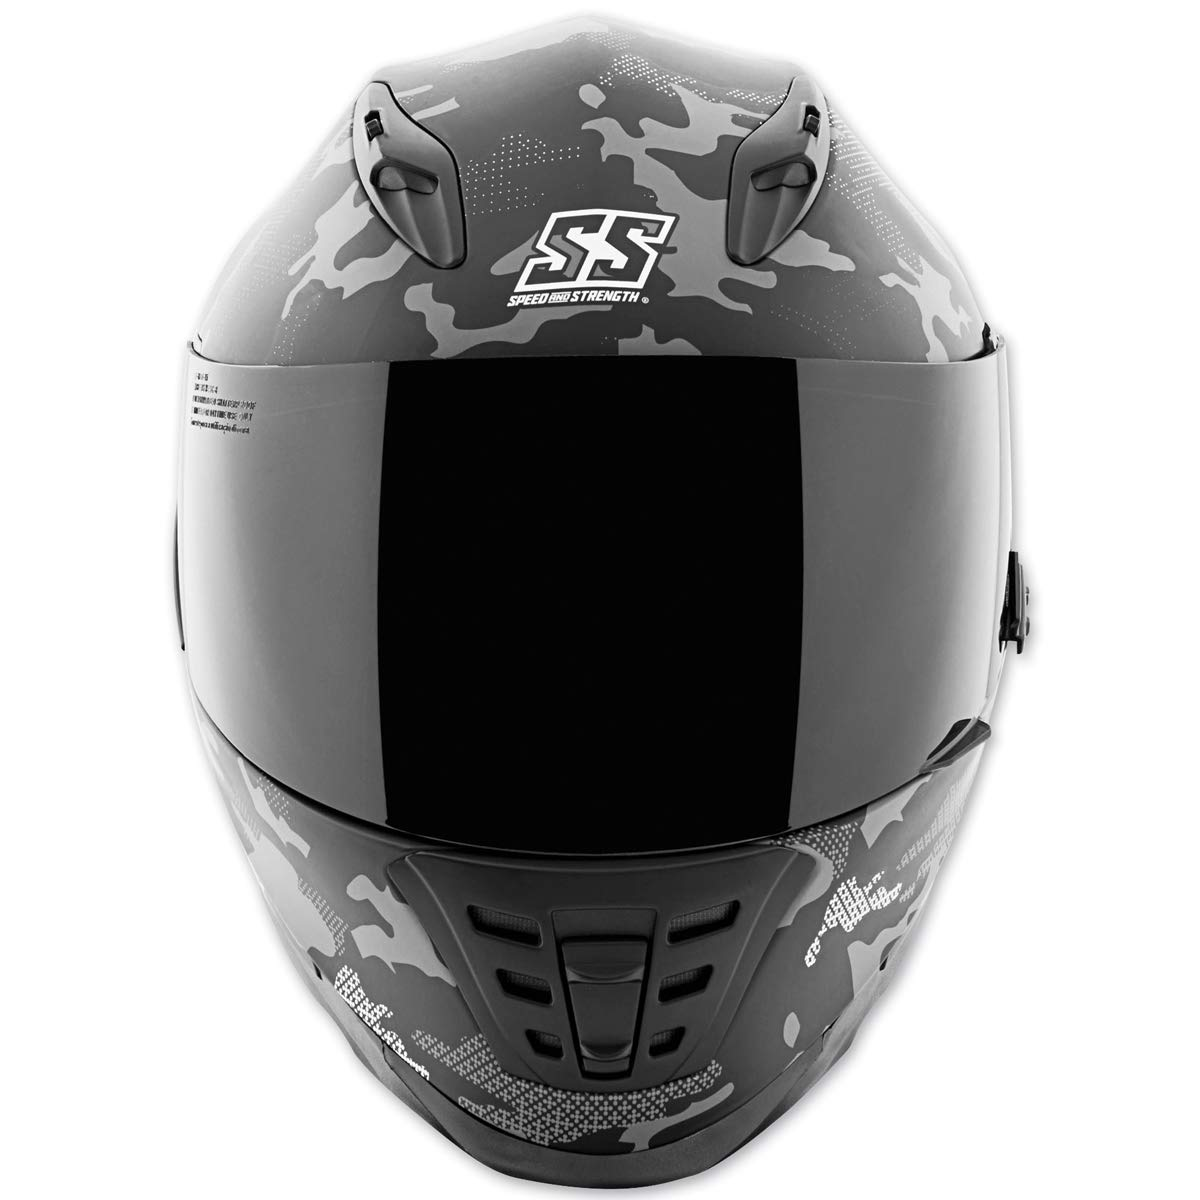 15534cc2 Amazon.com: Speed and Strength Unisex Adult SS1600 Straight Savage  White/Black Full Face Helmet 884530: Sports & Outdoors